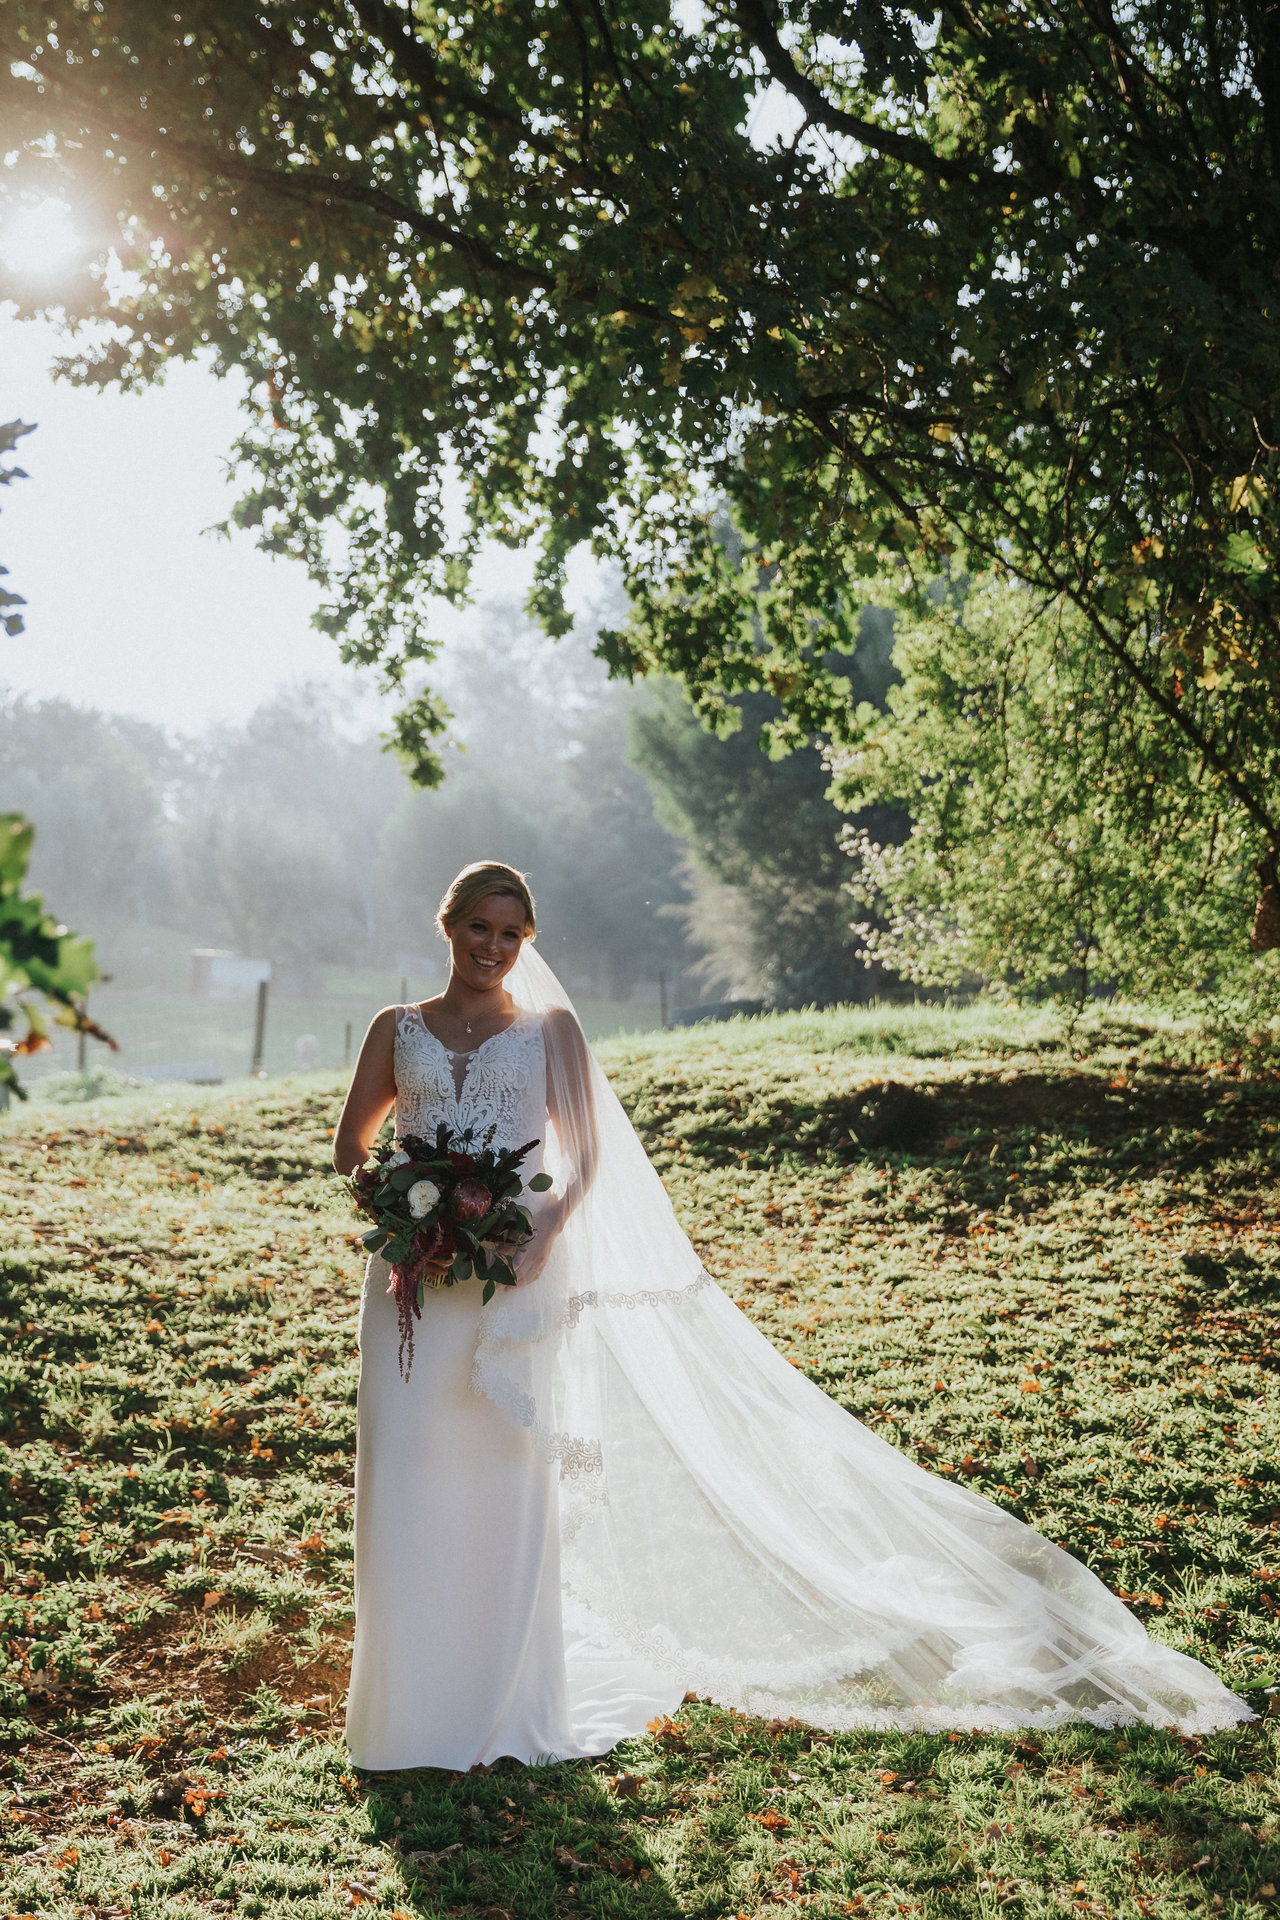 Bridal photography in the Yarra Valley